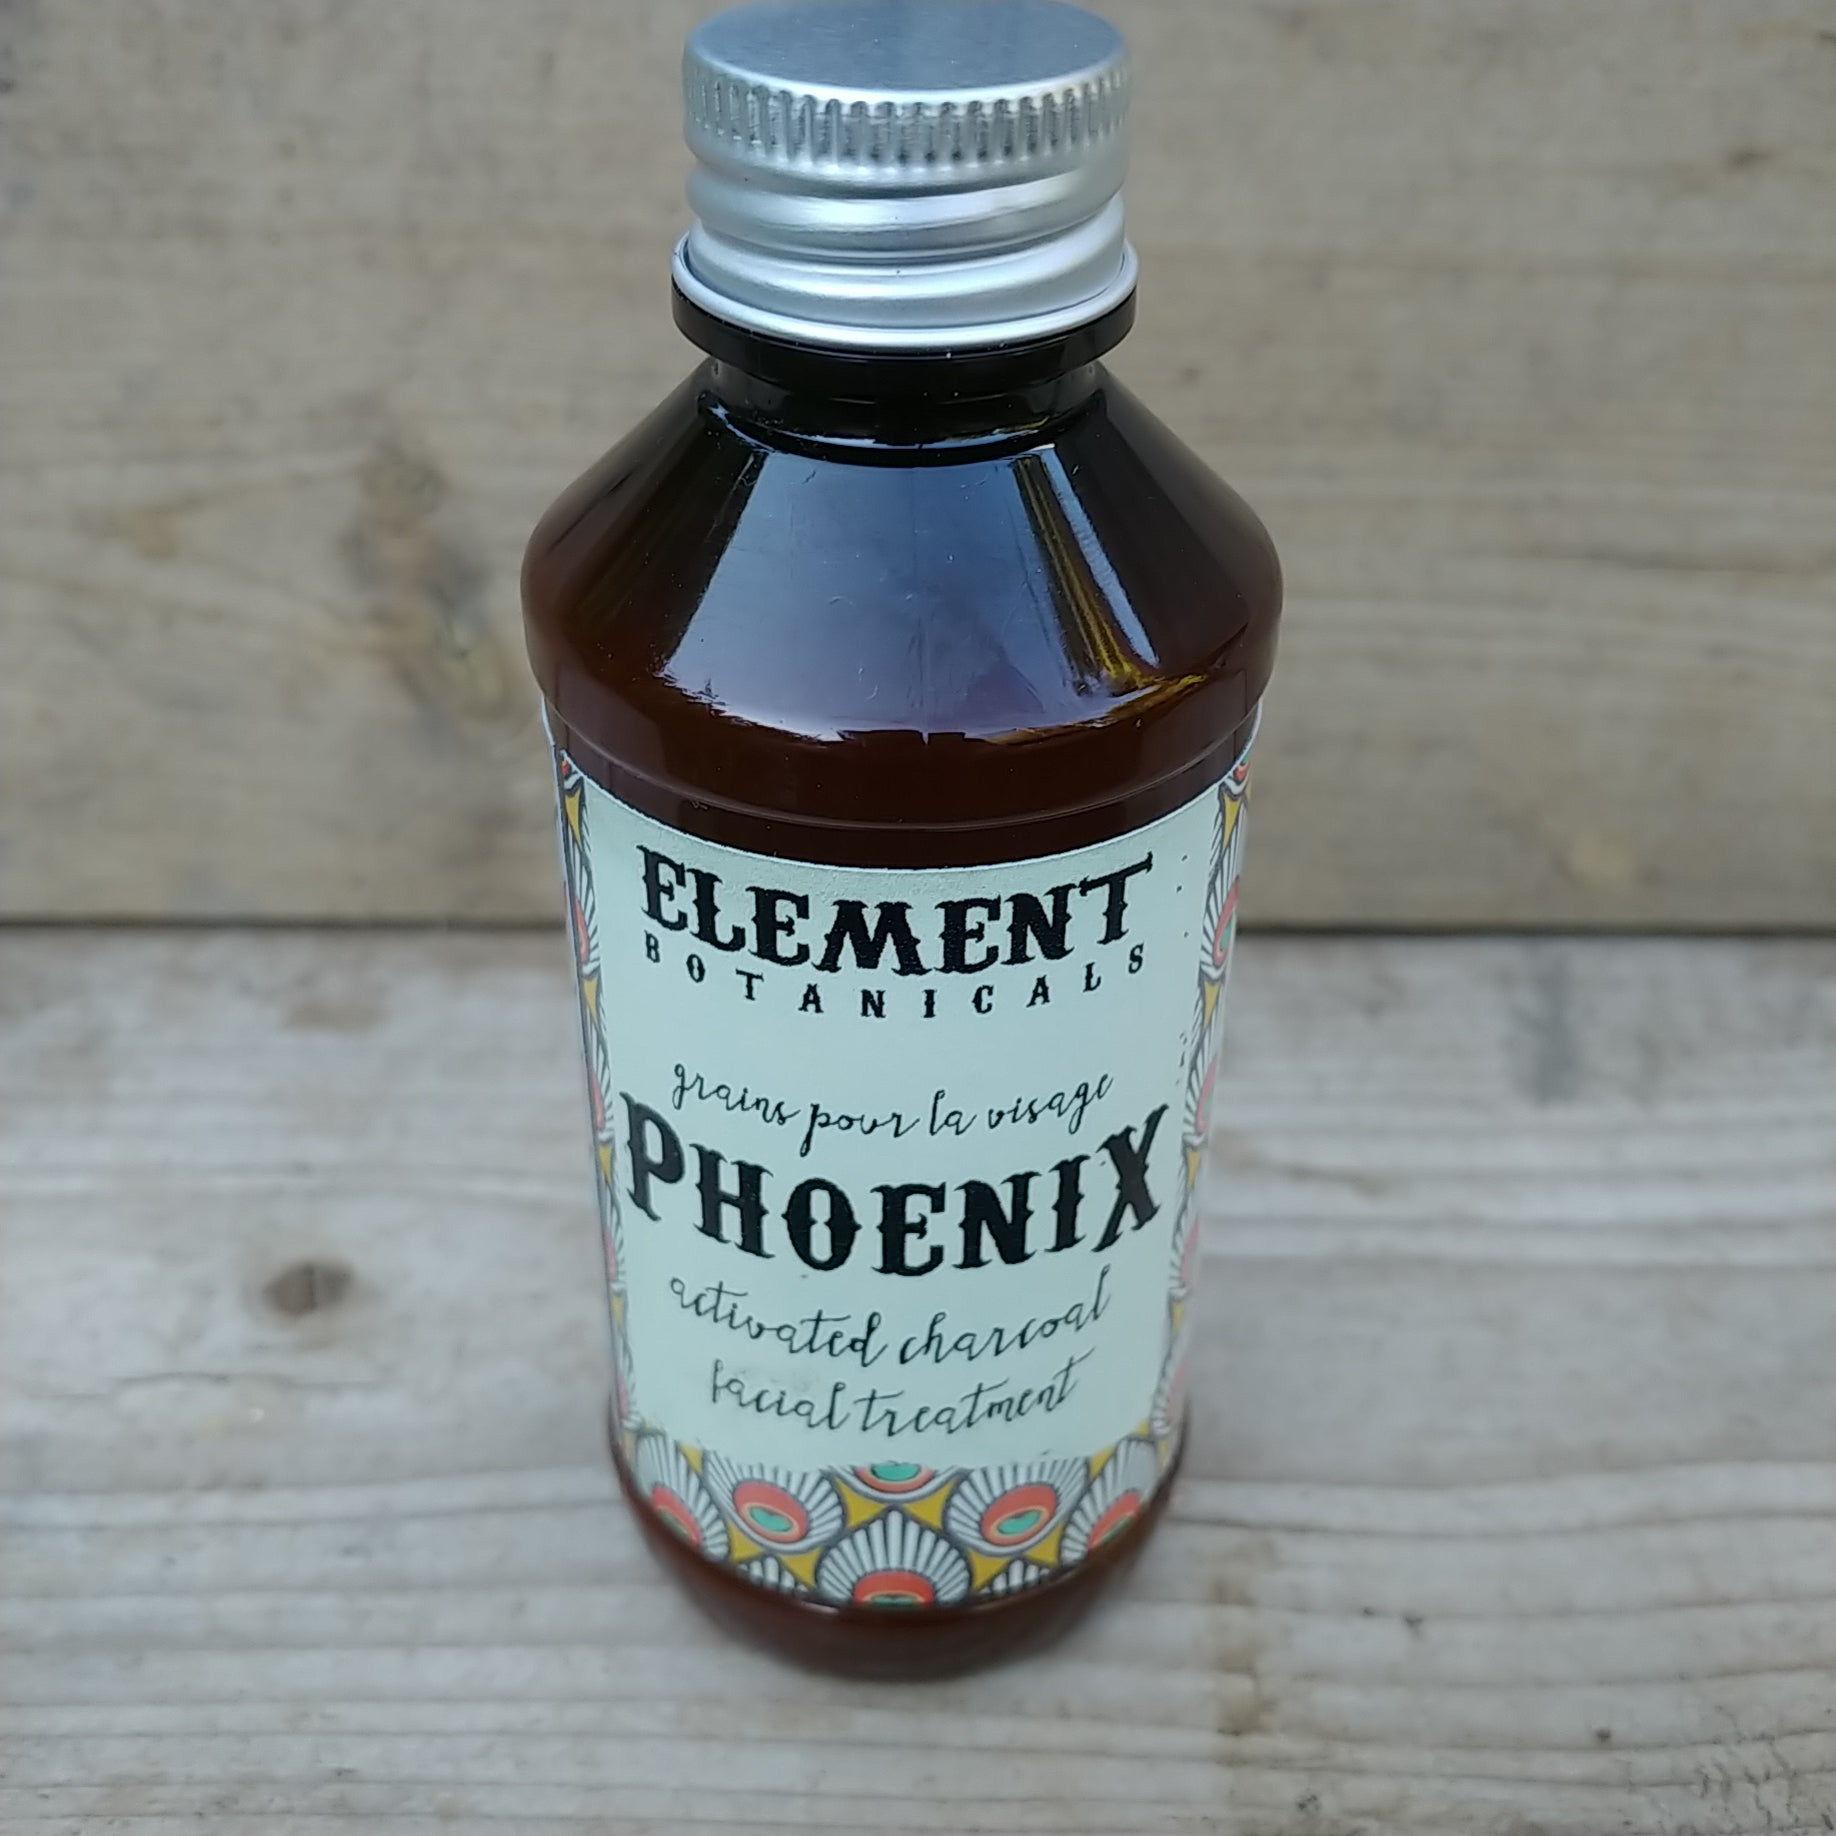 Element phoenix transformative grains